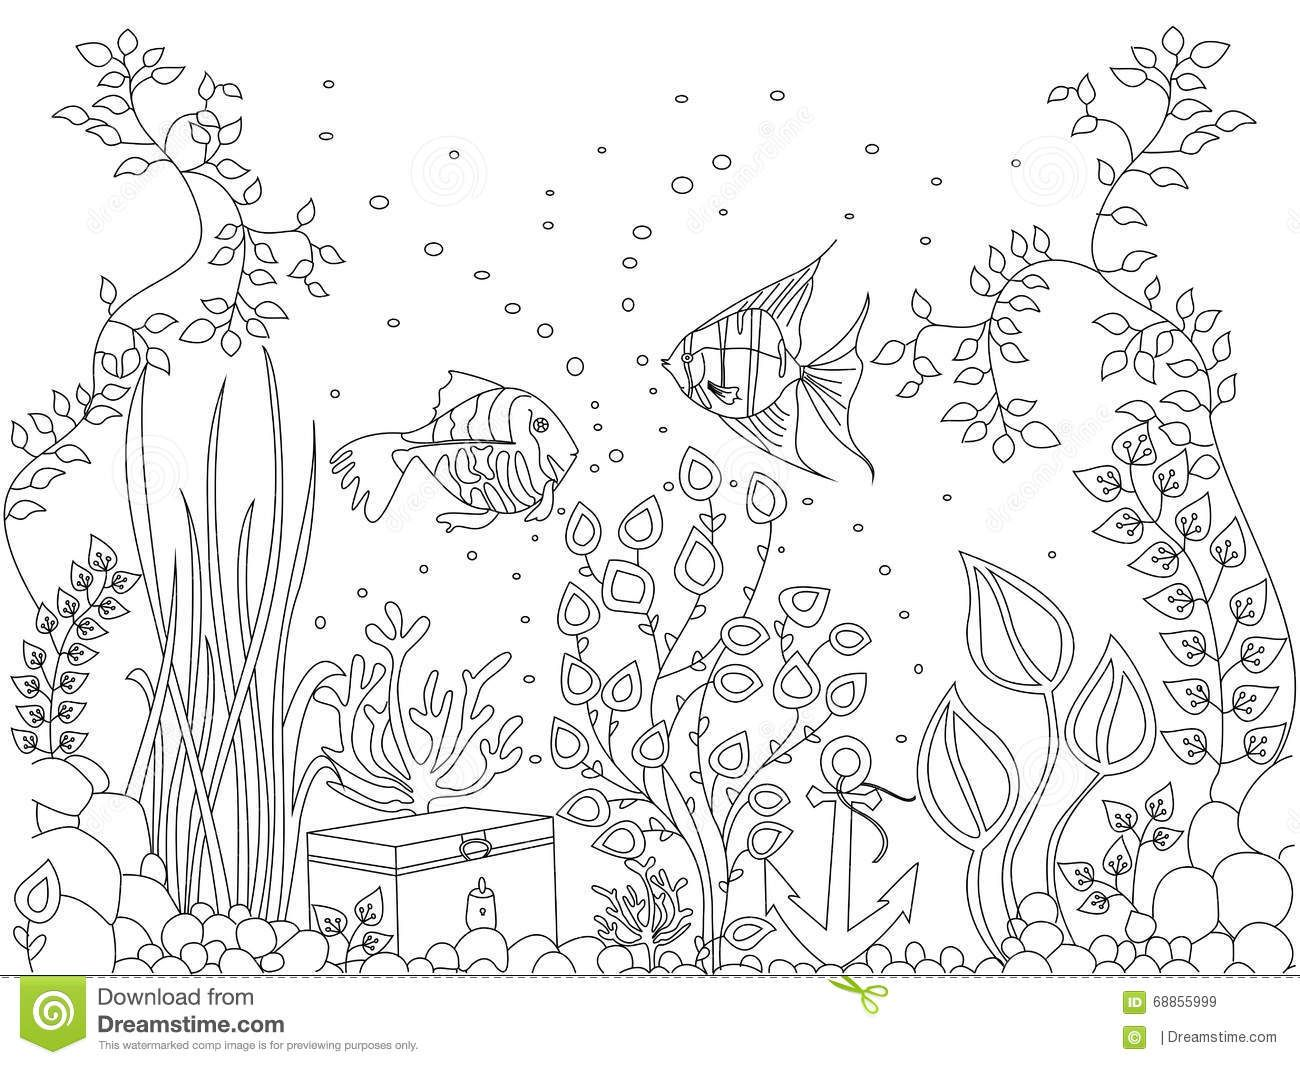 Related Image Coloring Pages Colori Sfondi E Marina